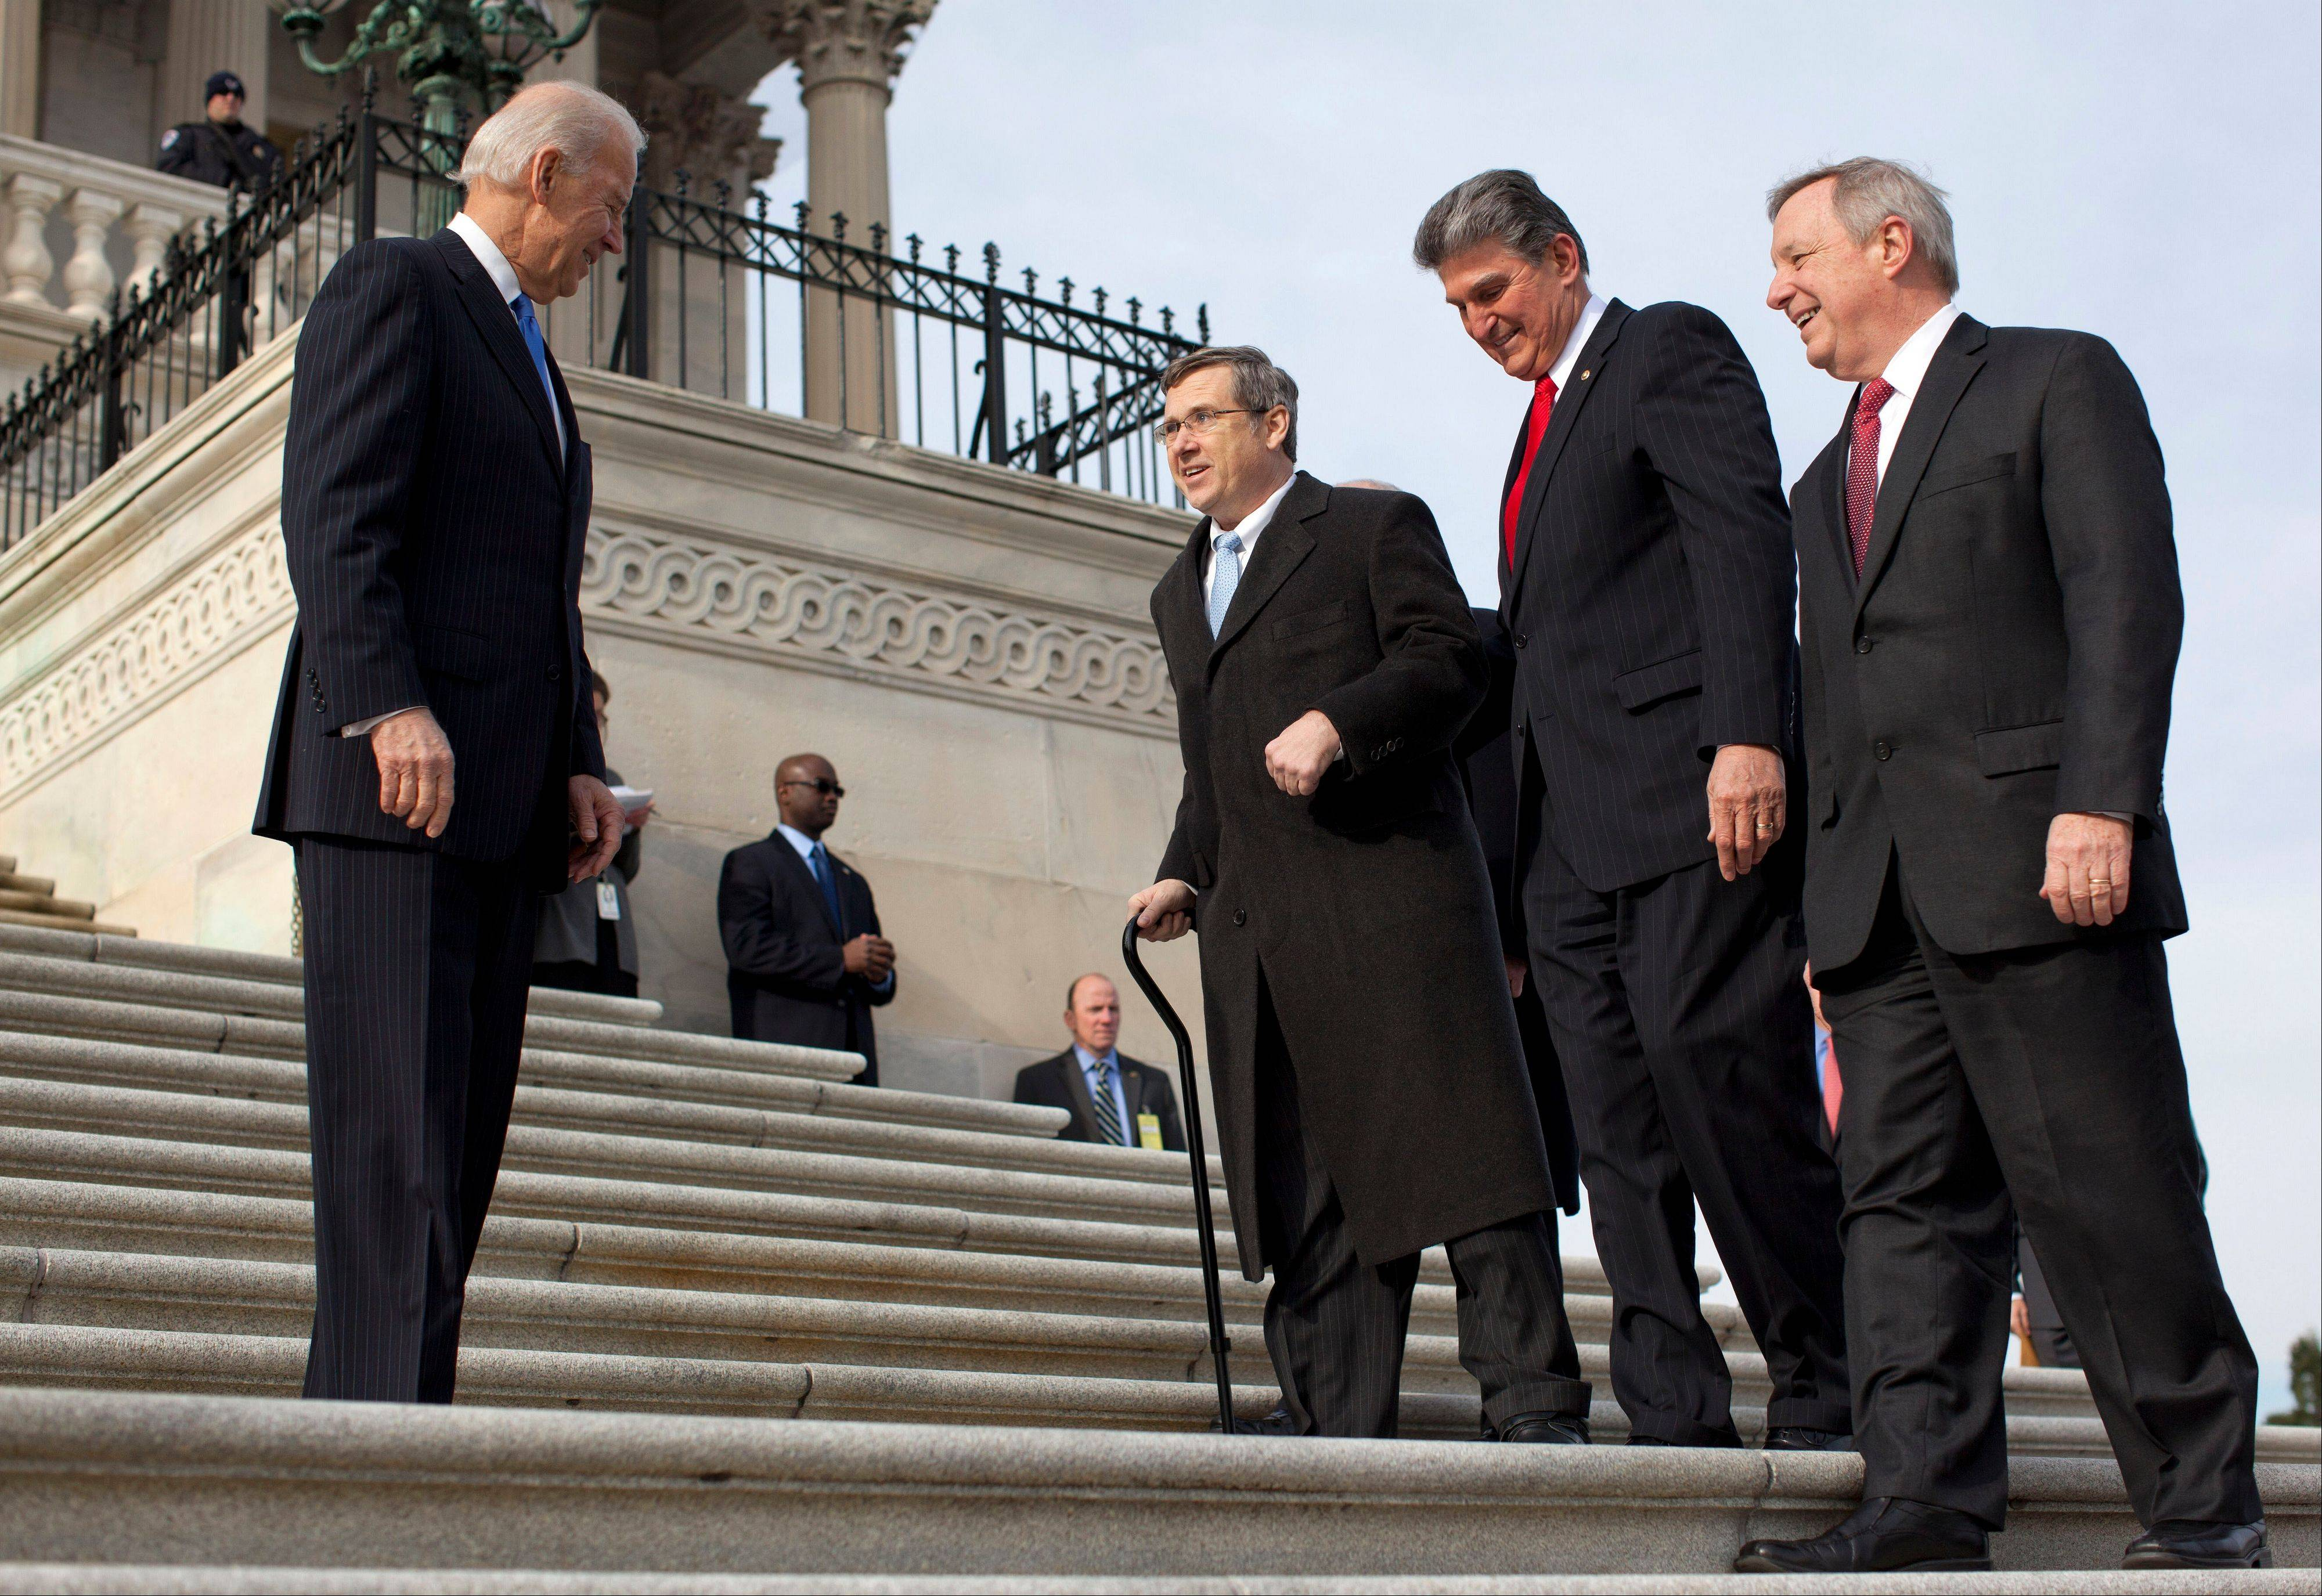 Vice President Joe Biden watches at left as Sen. Mark Kirk, second from left, accompanied by Sen. Joe Manchin, a West Virginia Democrat, second form right, and Senate Majority whip Dick Durbin, right, walks the steps to the Senate door of the Capitol building on Capitol Hill in Washington on Jan. 3, 2013. Manchin also said that Kirk, who voted Wednesday for in favor of expanded background checks on gun buyers, held steadfast to closing all loopholes at gun shows, a point of contention among some other Republicans.